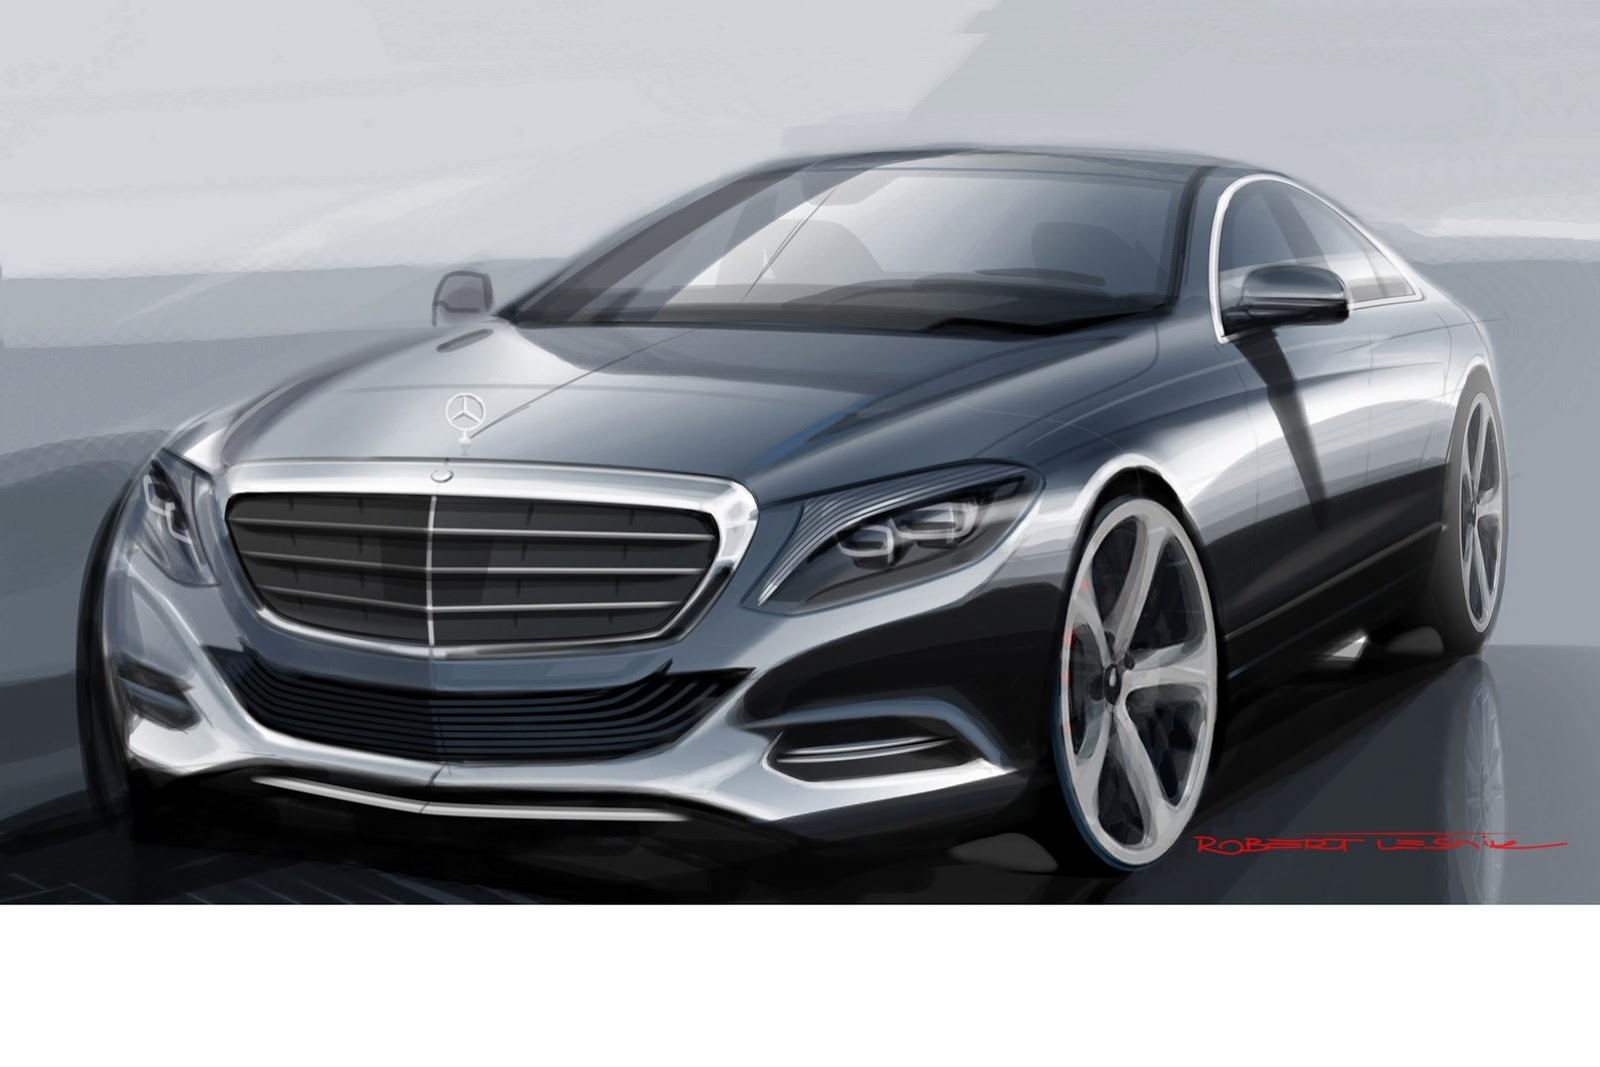 2014 Mercedes Benz S-Class Sketch - SMADE MEDIA (1)